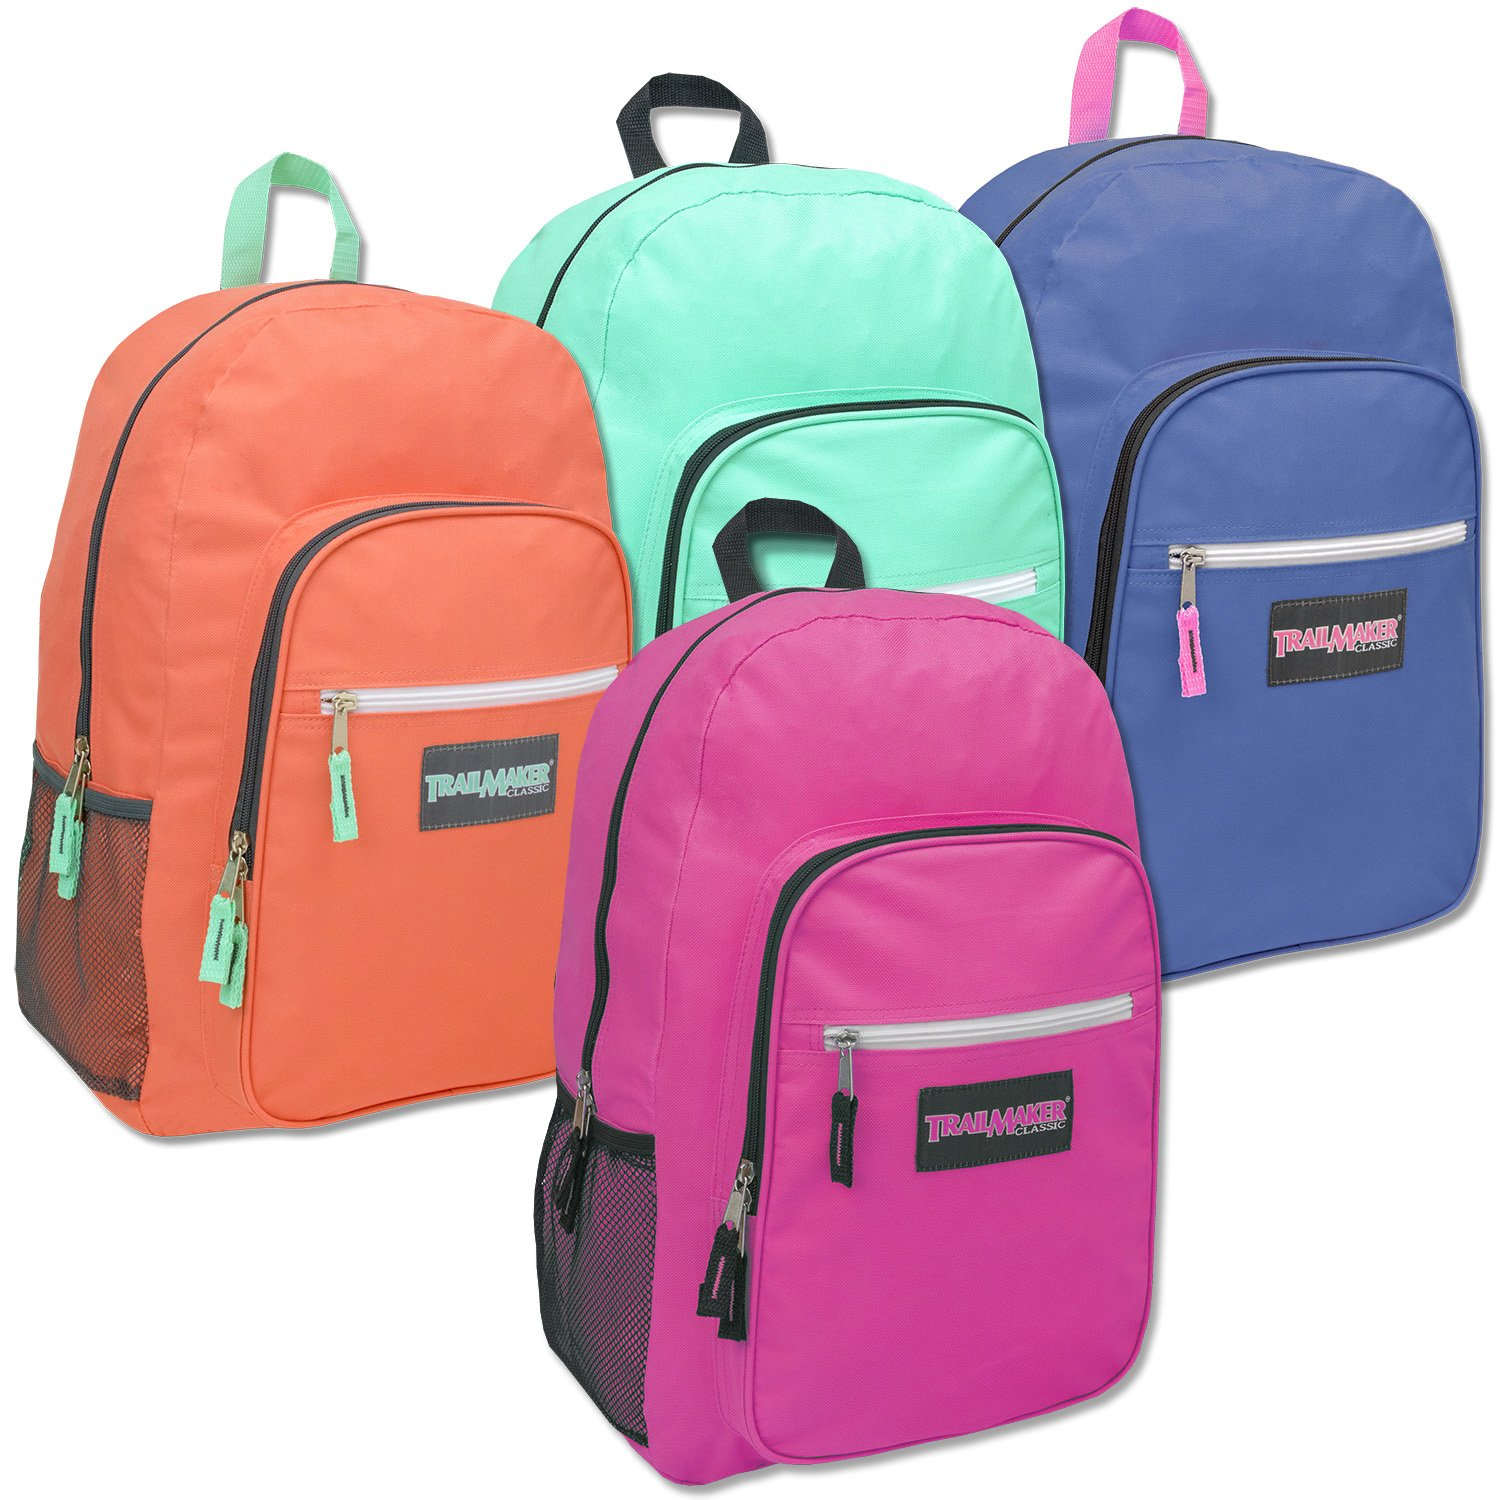 Deluxe 19 Inch Backpack - Girls Case Pack 24